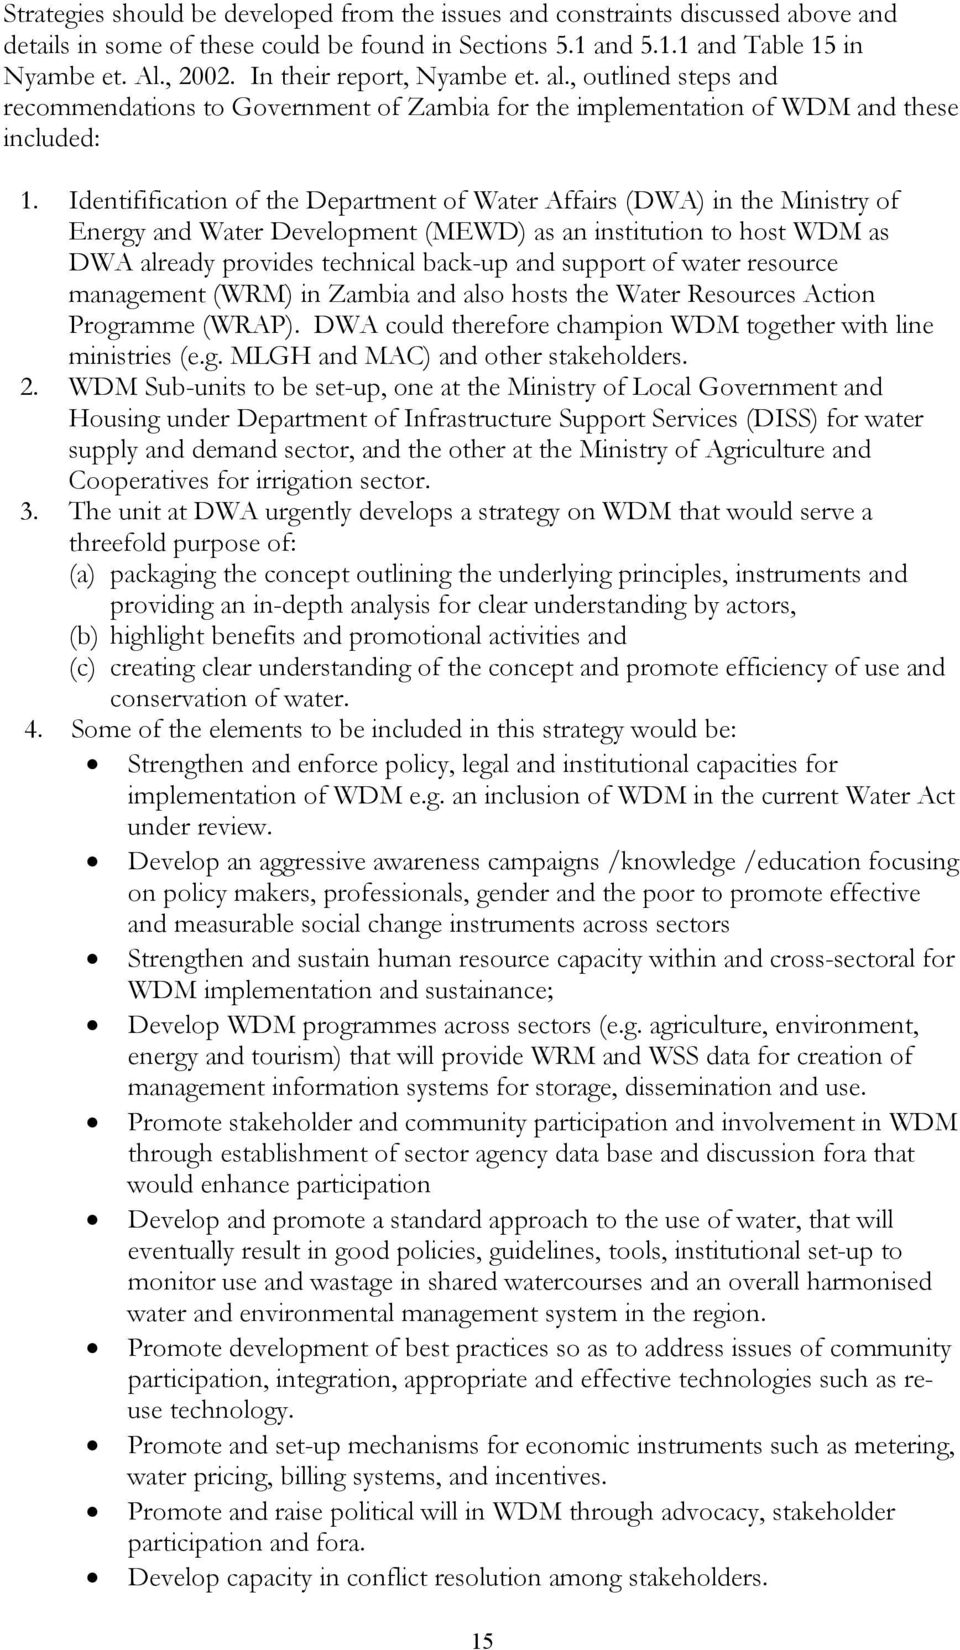 Identifification of the Department of Water Affairs (DWA) in the Ministry of Energy and Water Development (MEWD) as an institution to host WDM as DWA already provides technical back-up and support of